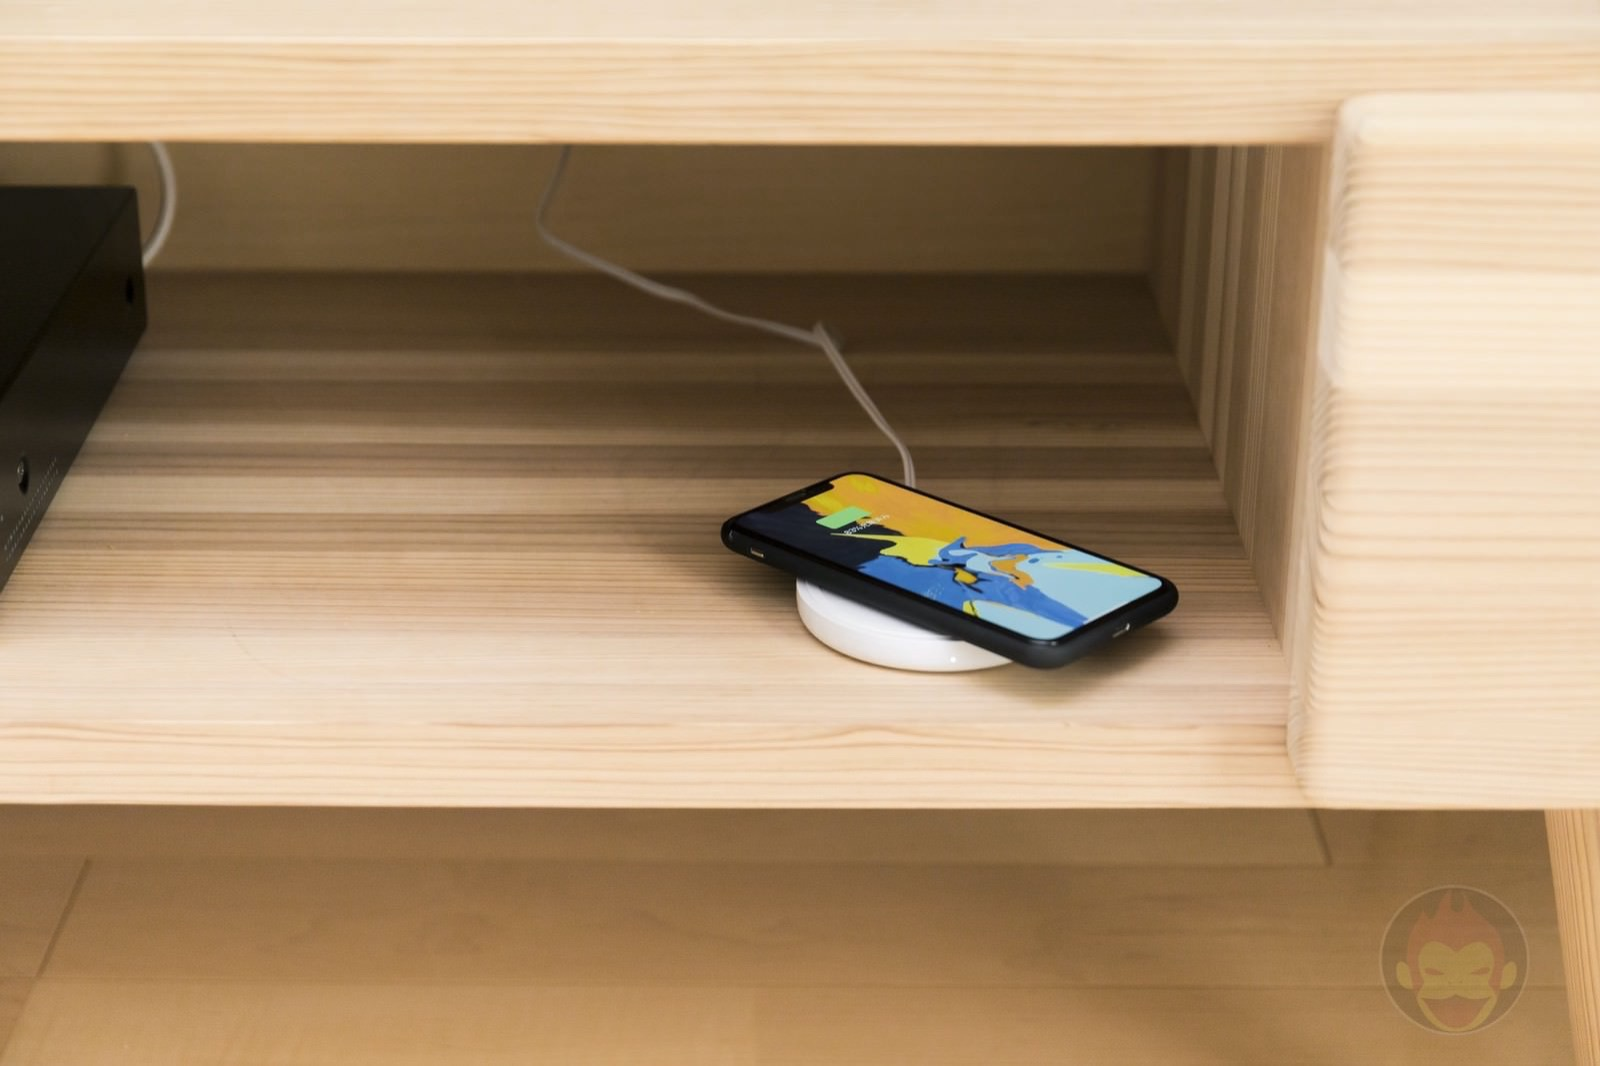 Using-Belkin-Wireless-Charger-to-have-a-better-charging-life-22.jpg